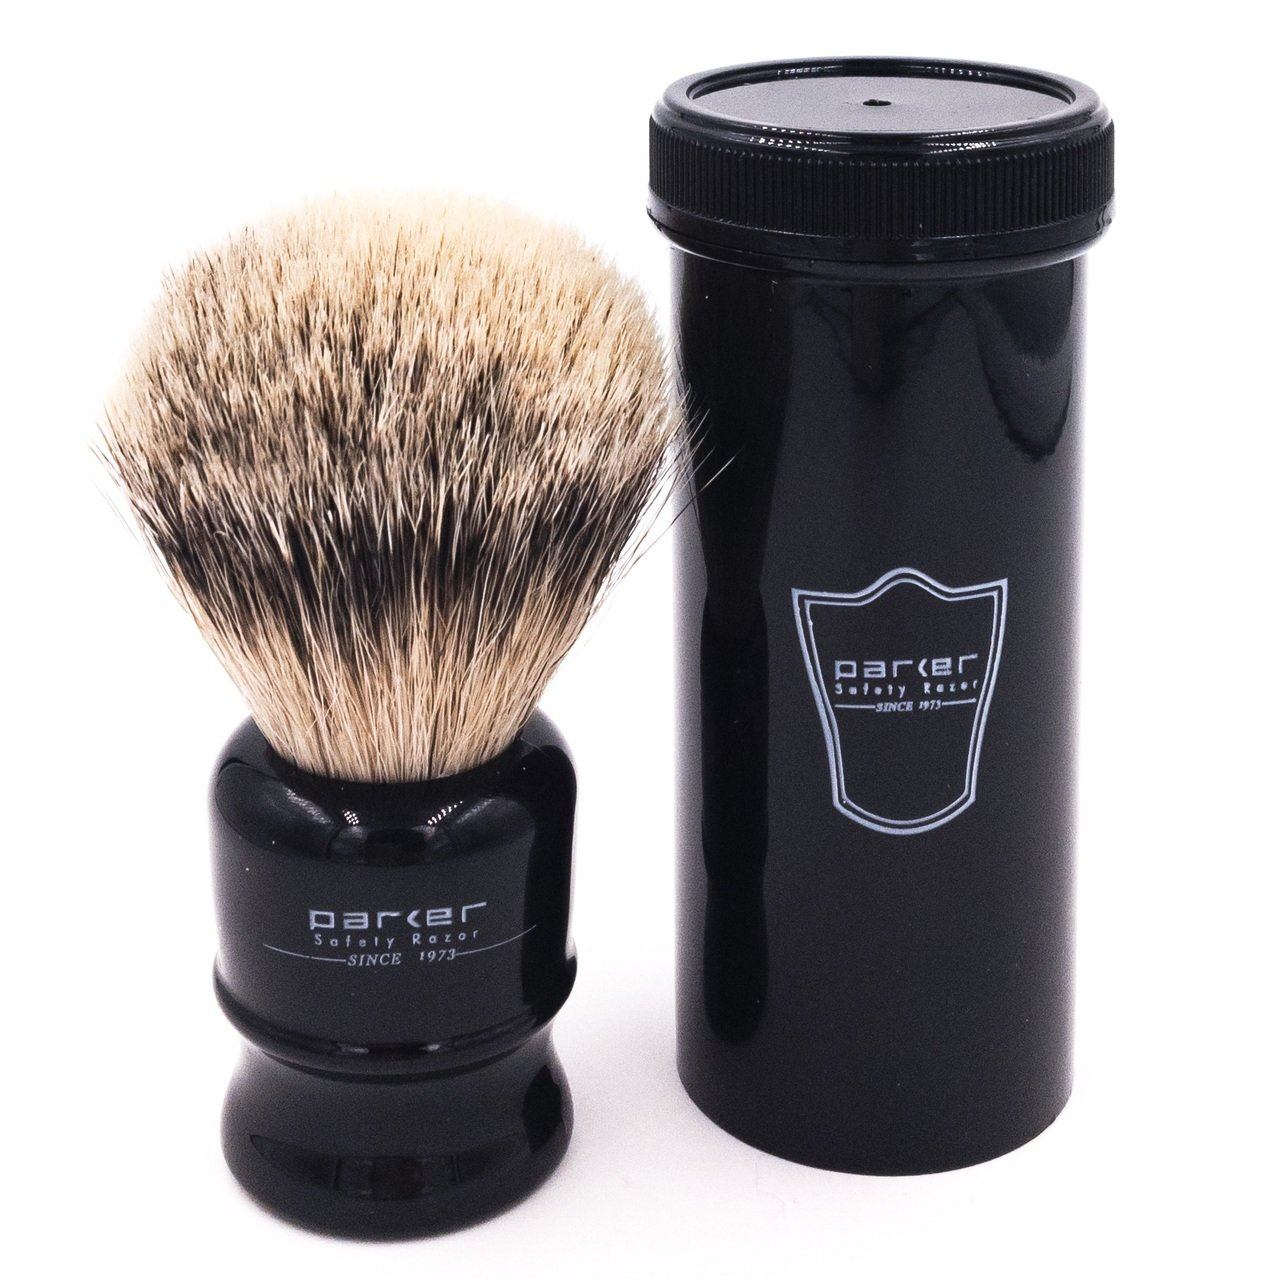 TRAVBHST Shaving Brush • Parker Shaving